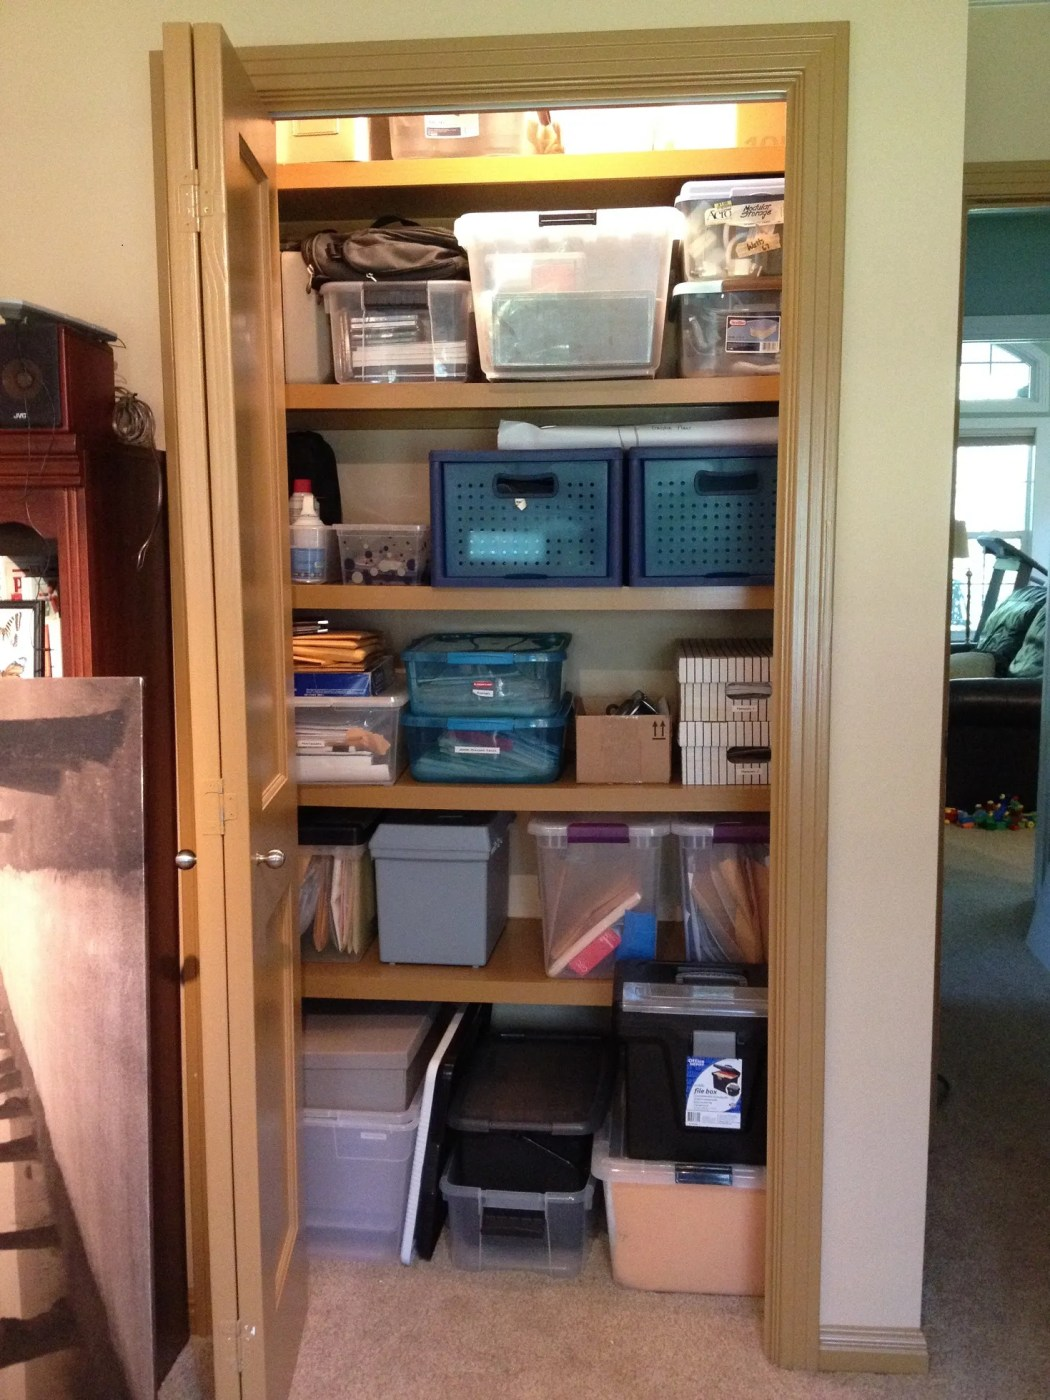 Purging Outdated Technology in a Home Office Closet  - Organized Home Office Closet